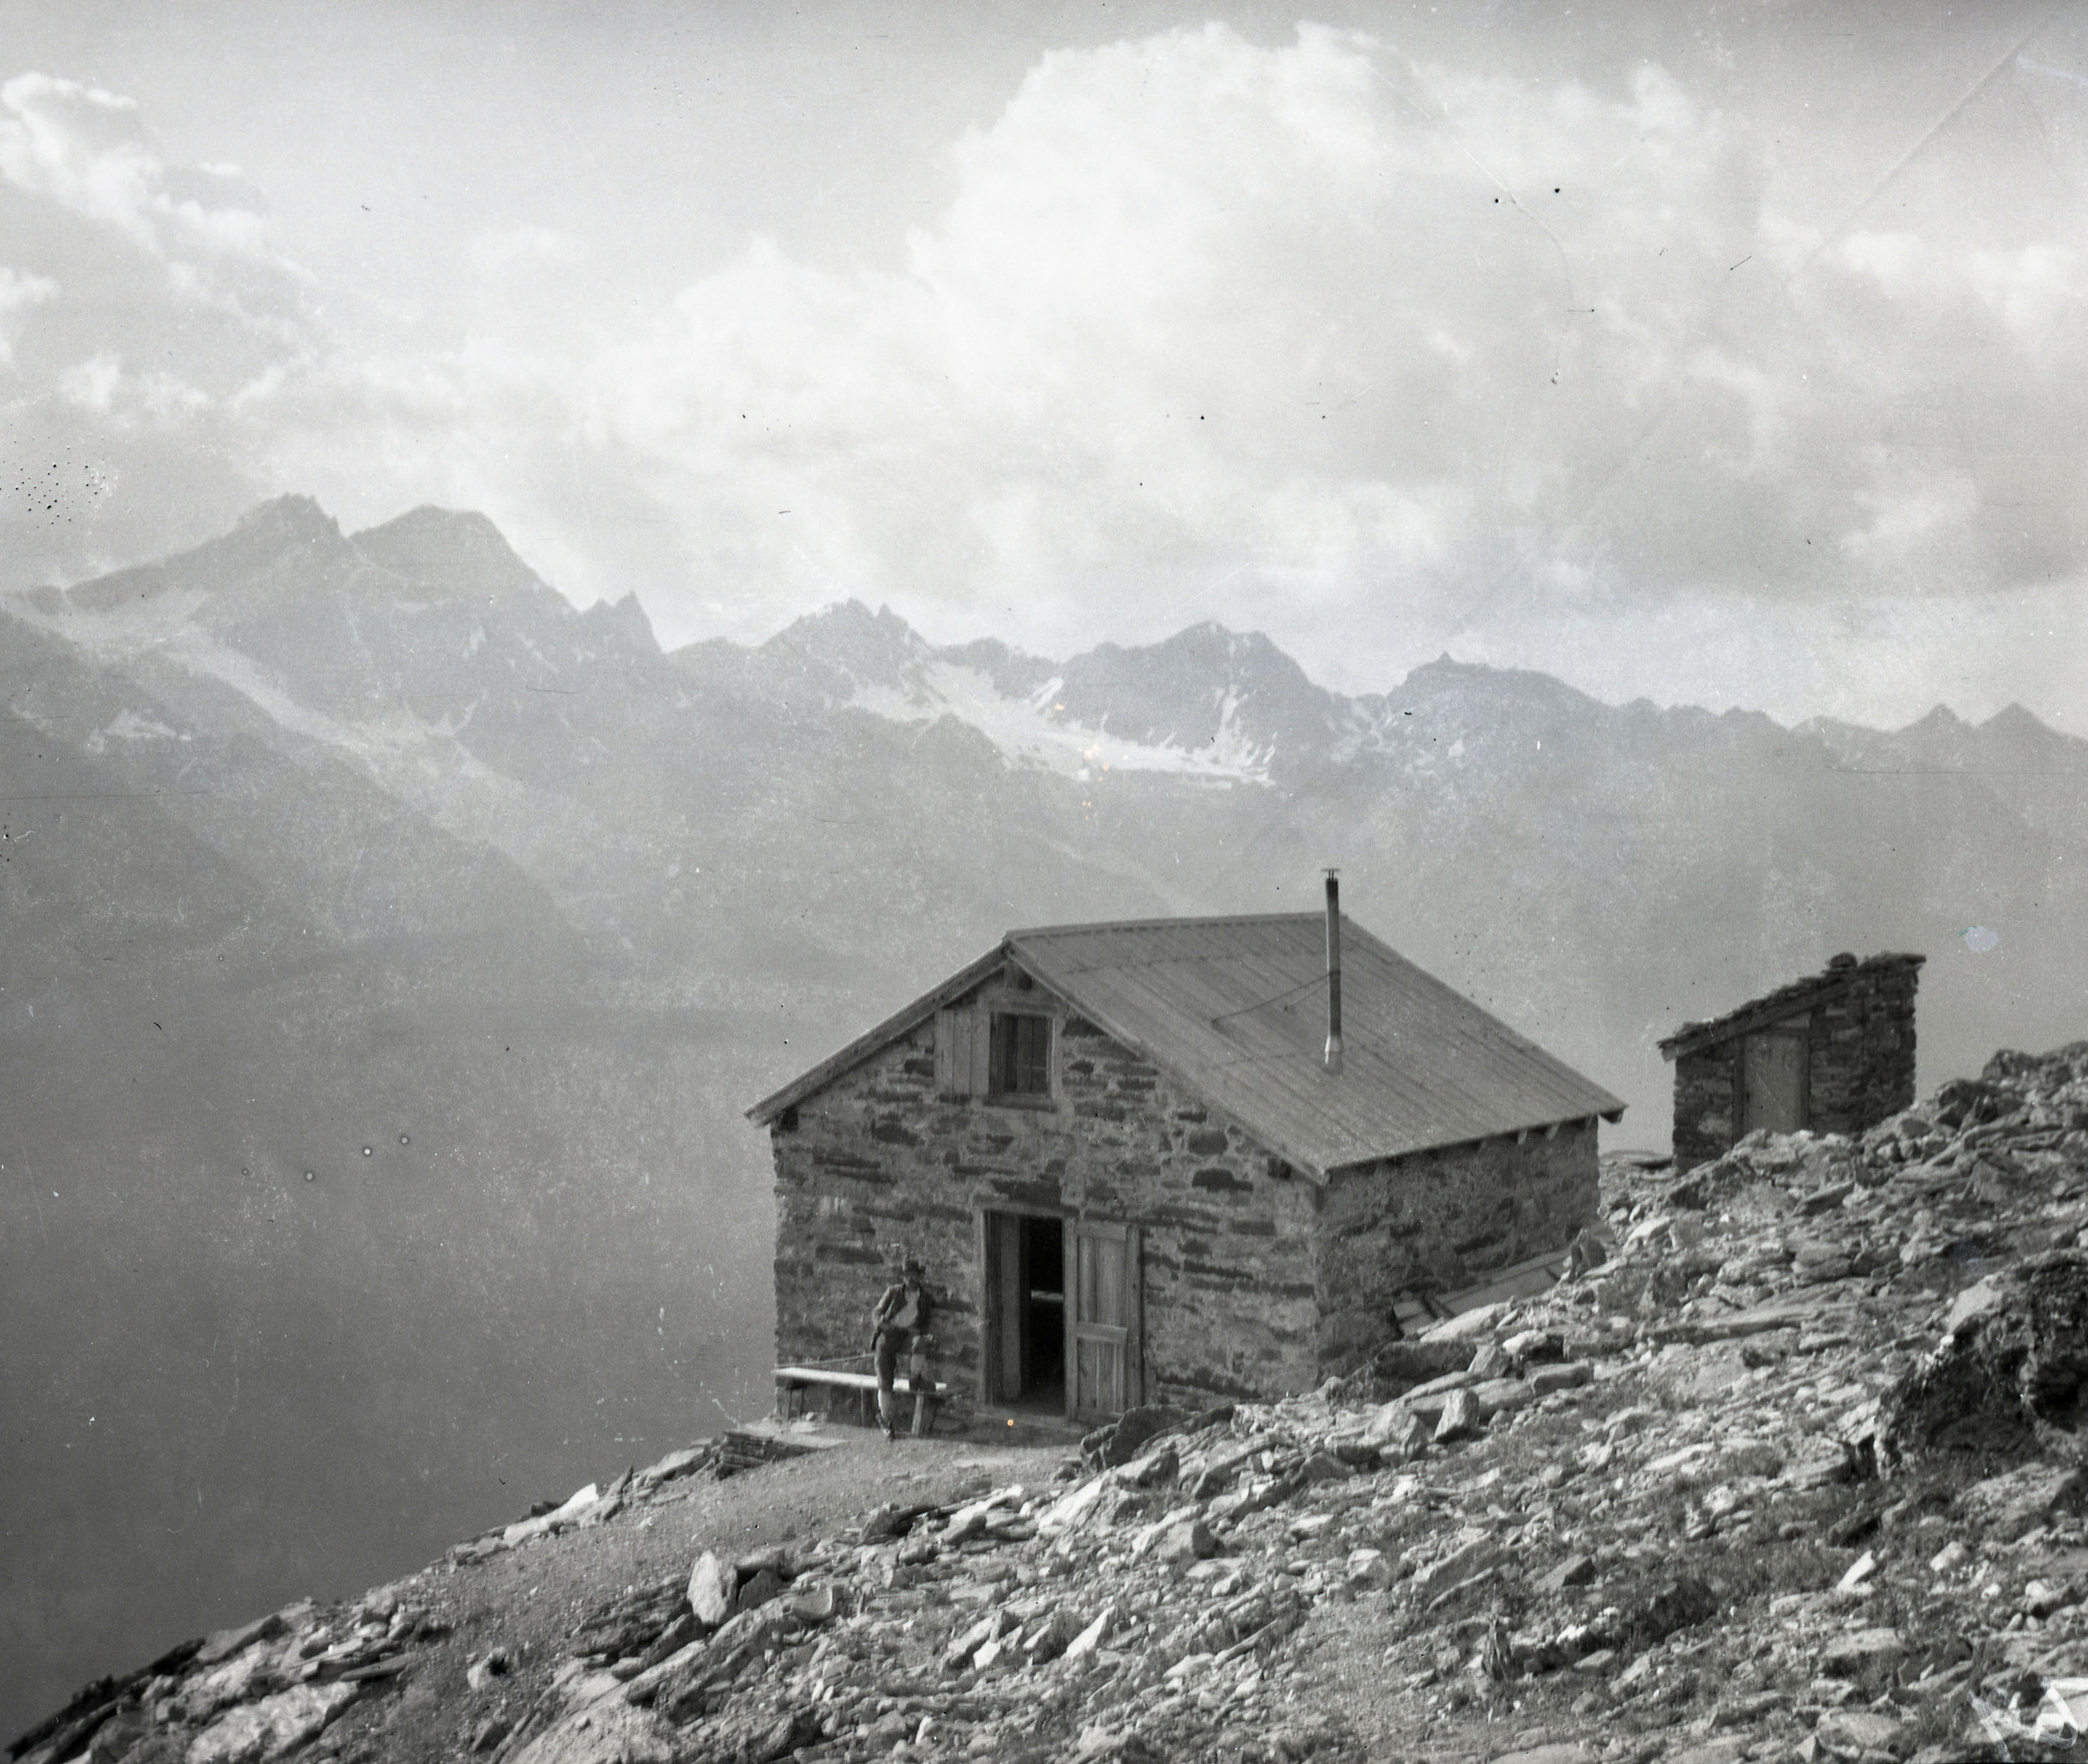 A hut in the Alps